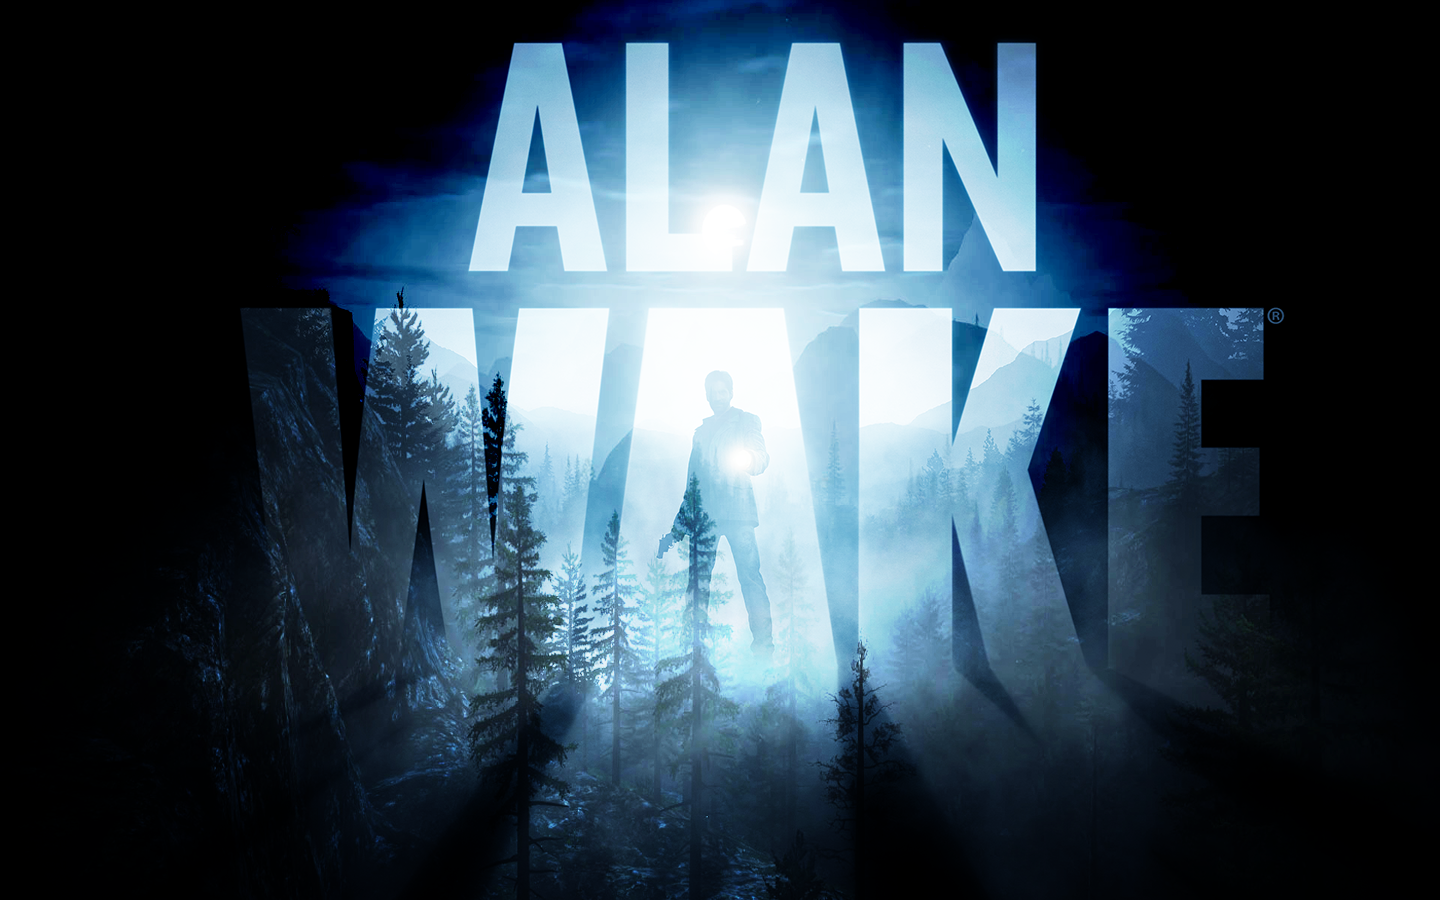 http://mutantville.com/blog/wp-content/uploads/2011/12/alan-wake-wallpaper-61.png